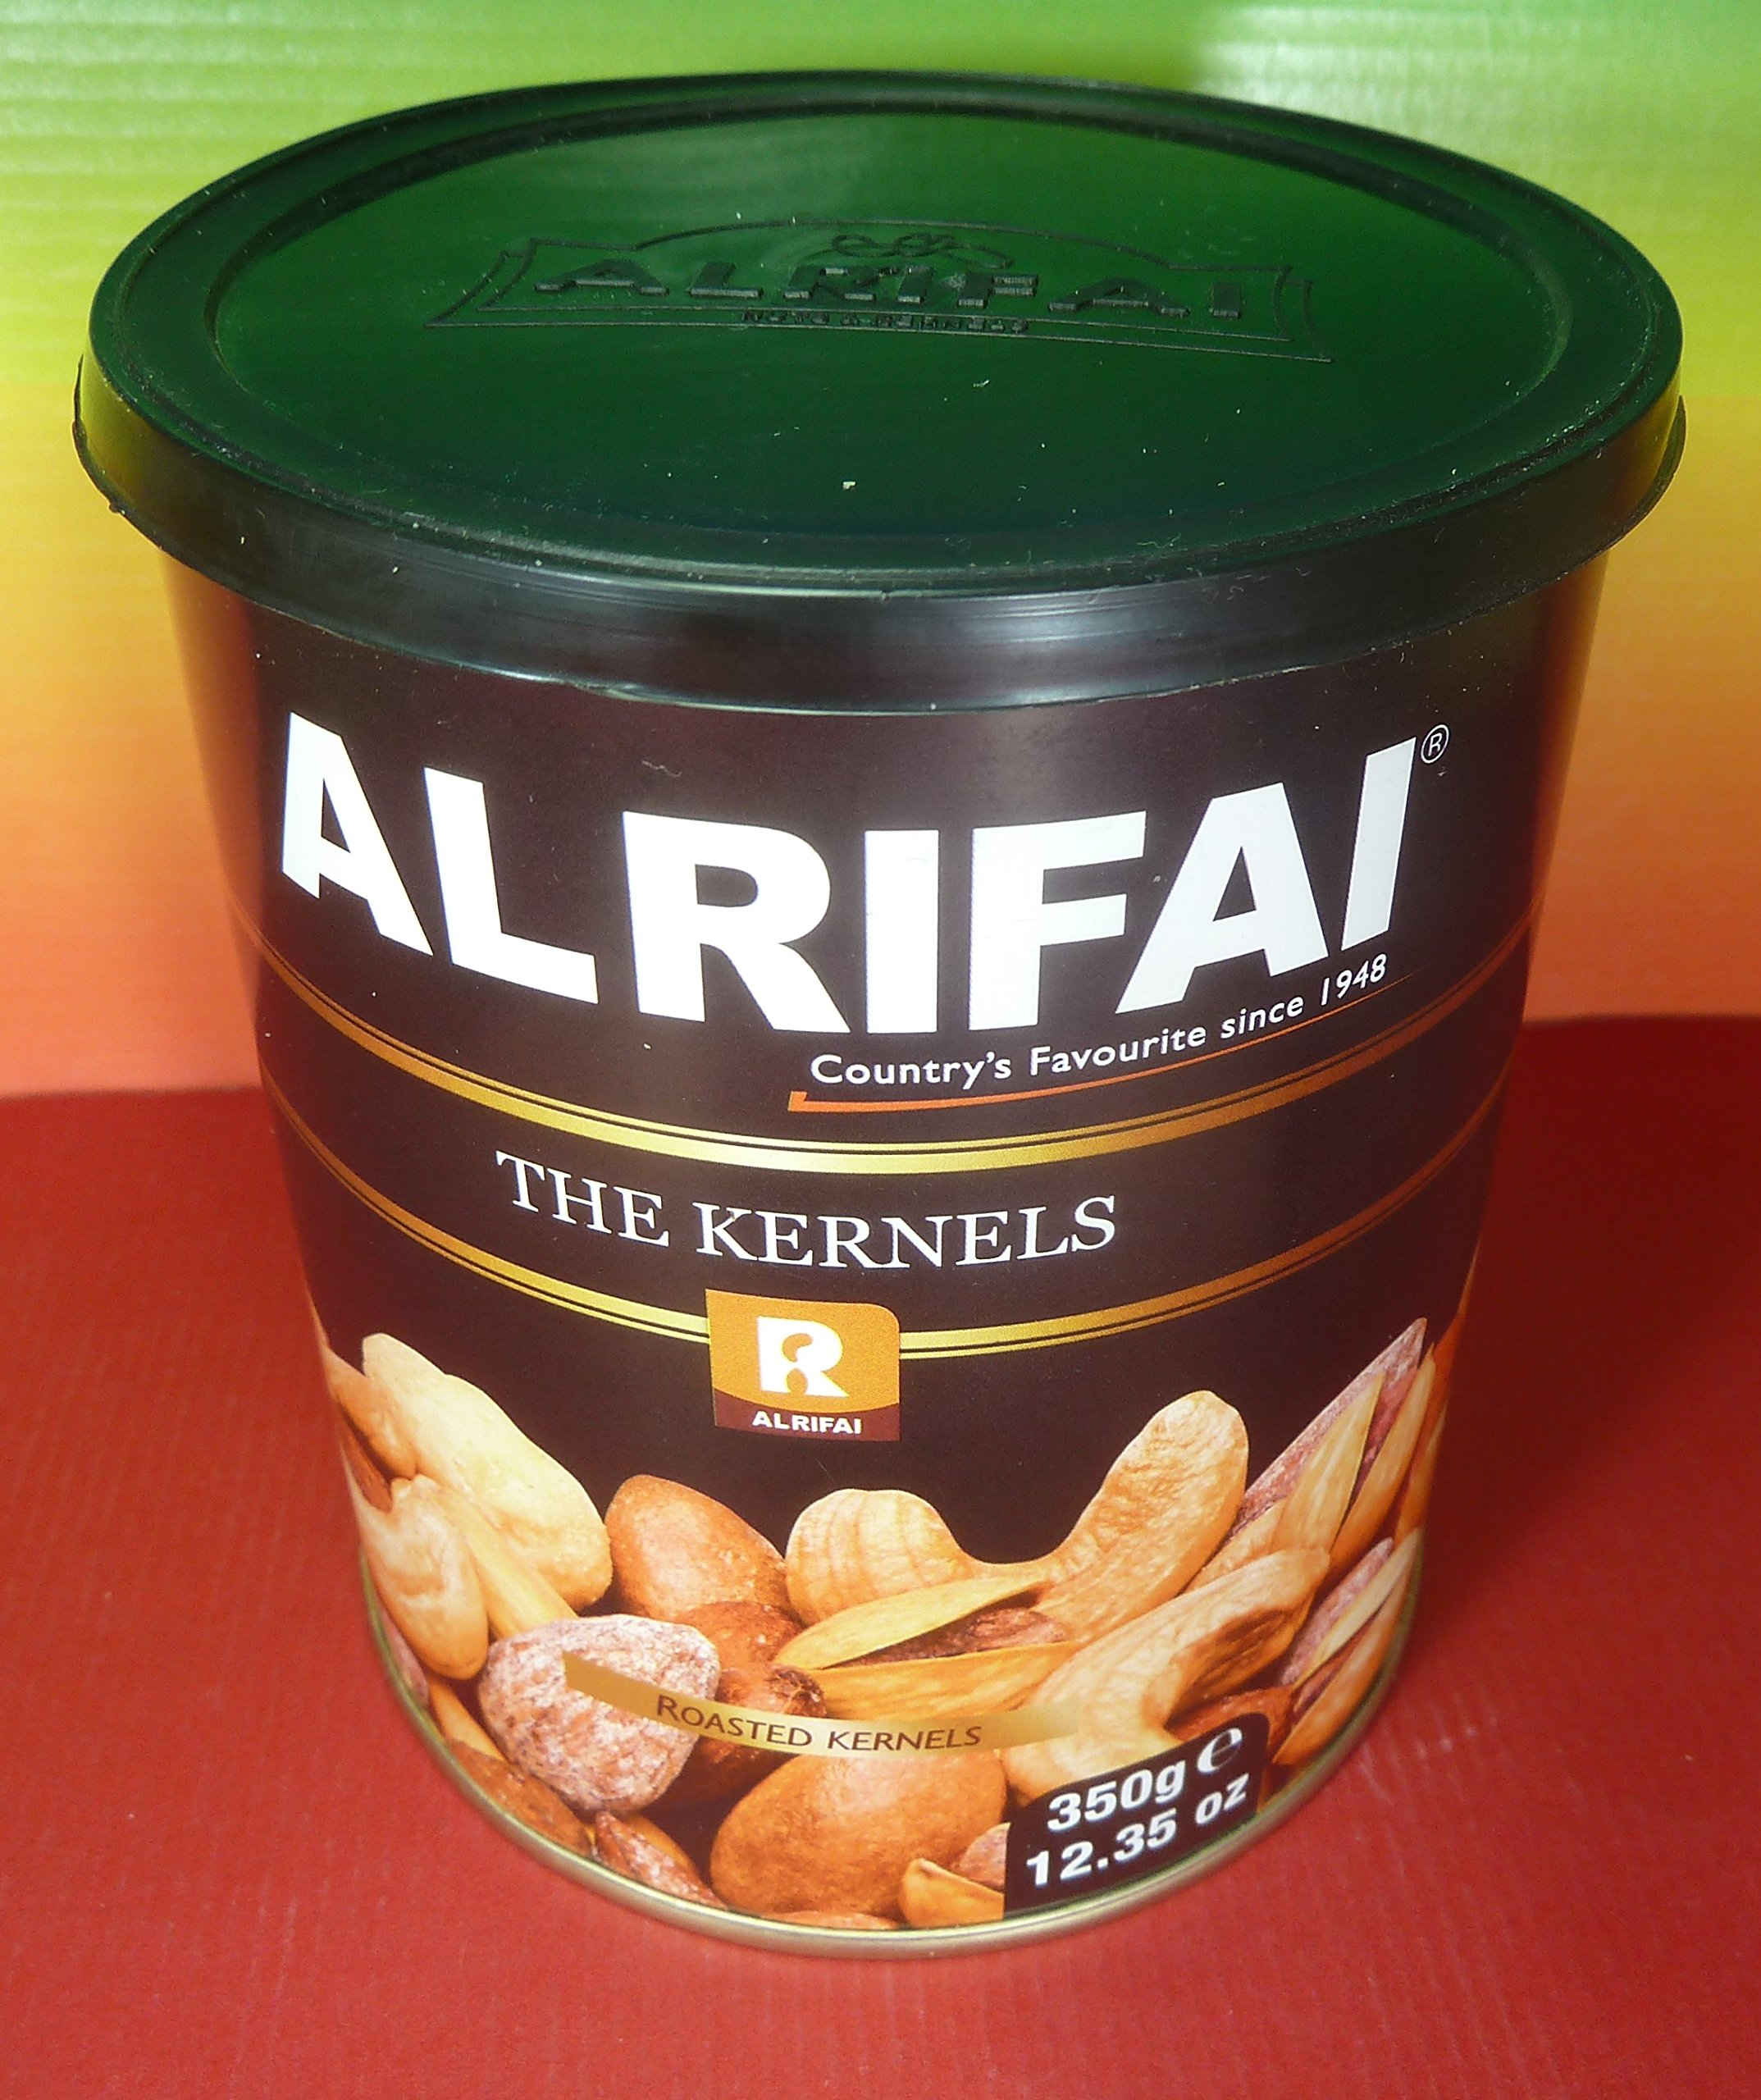 Alrifai THE KERNELS Gourmet Nuts from Lebanon Tin 350g 12.35 OZ,Containing Almonds , Pistachios , Cashews , Hazelnuts, Macadamias ,Salt, Fresh